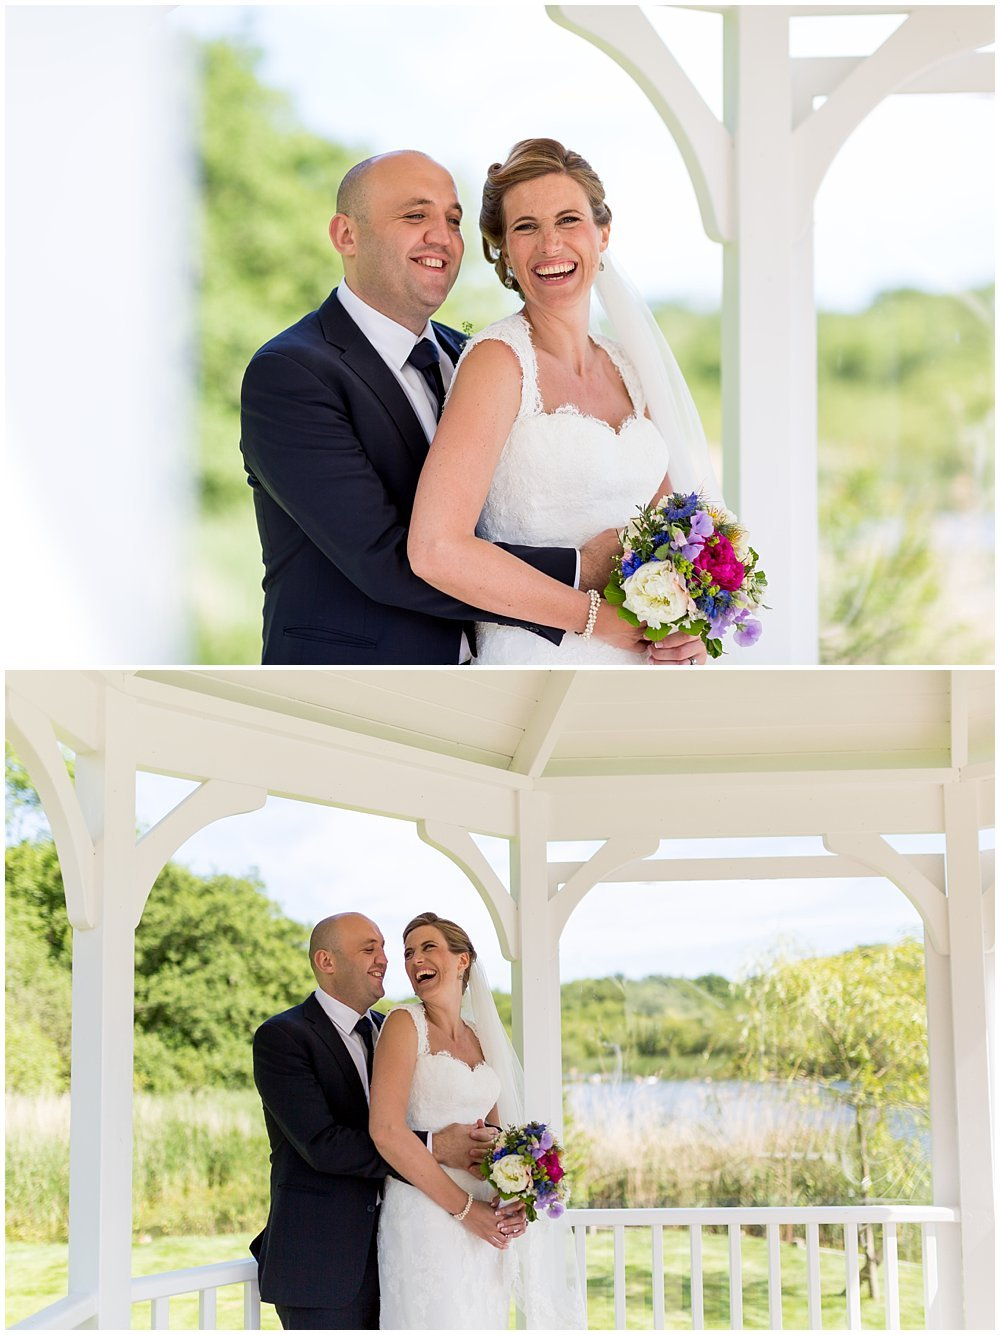 AMY AND DUNCAN NORWICH CATHEDRAL AND THE BOATHOUSE WEDDING - NORWICH AND NORFOLK WEDDING PHOTOGRAPHER 39